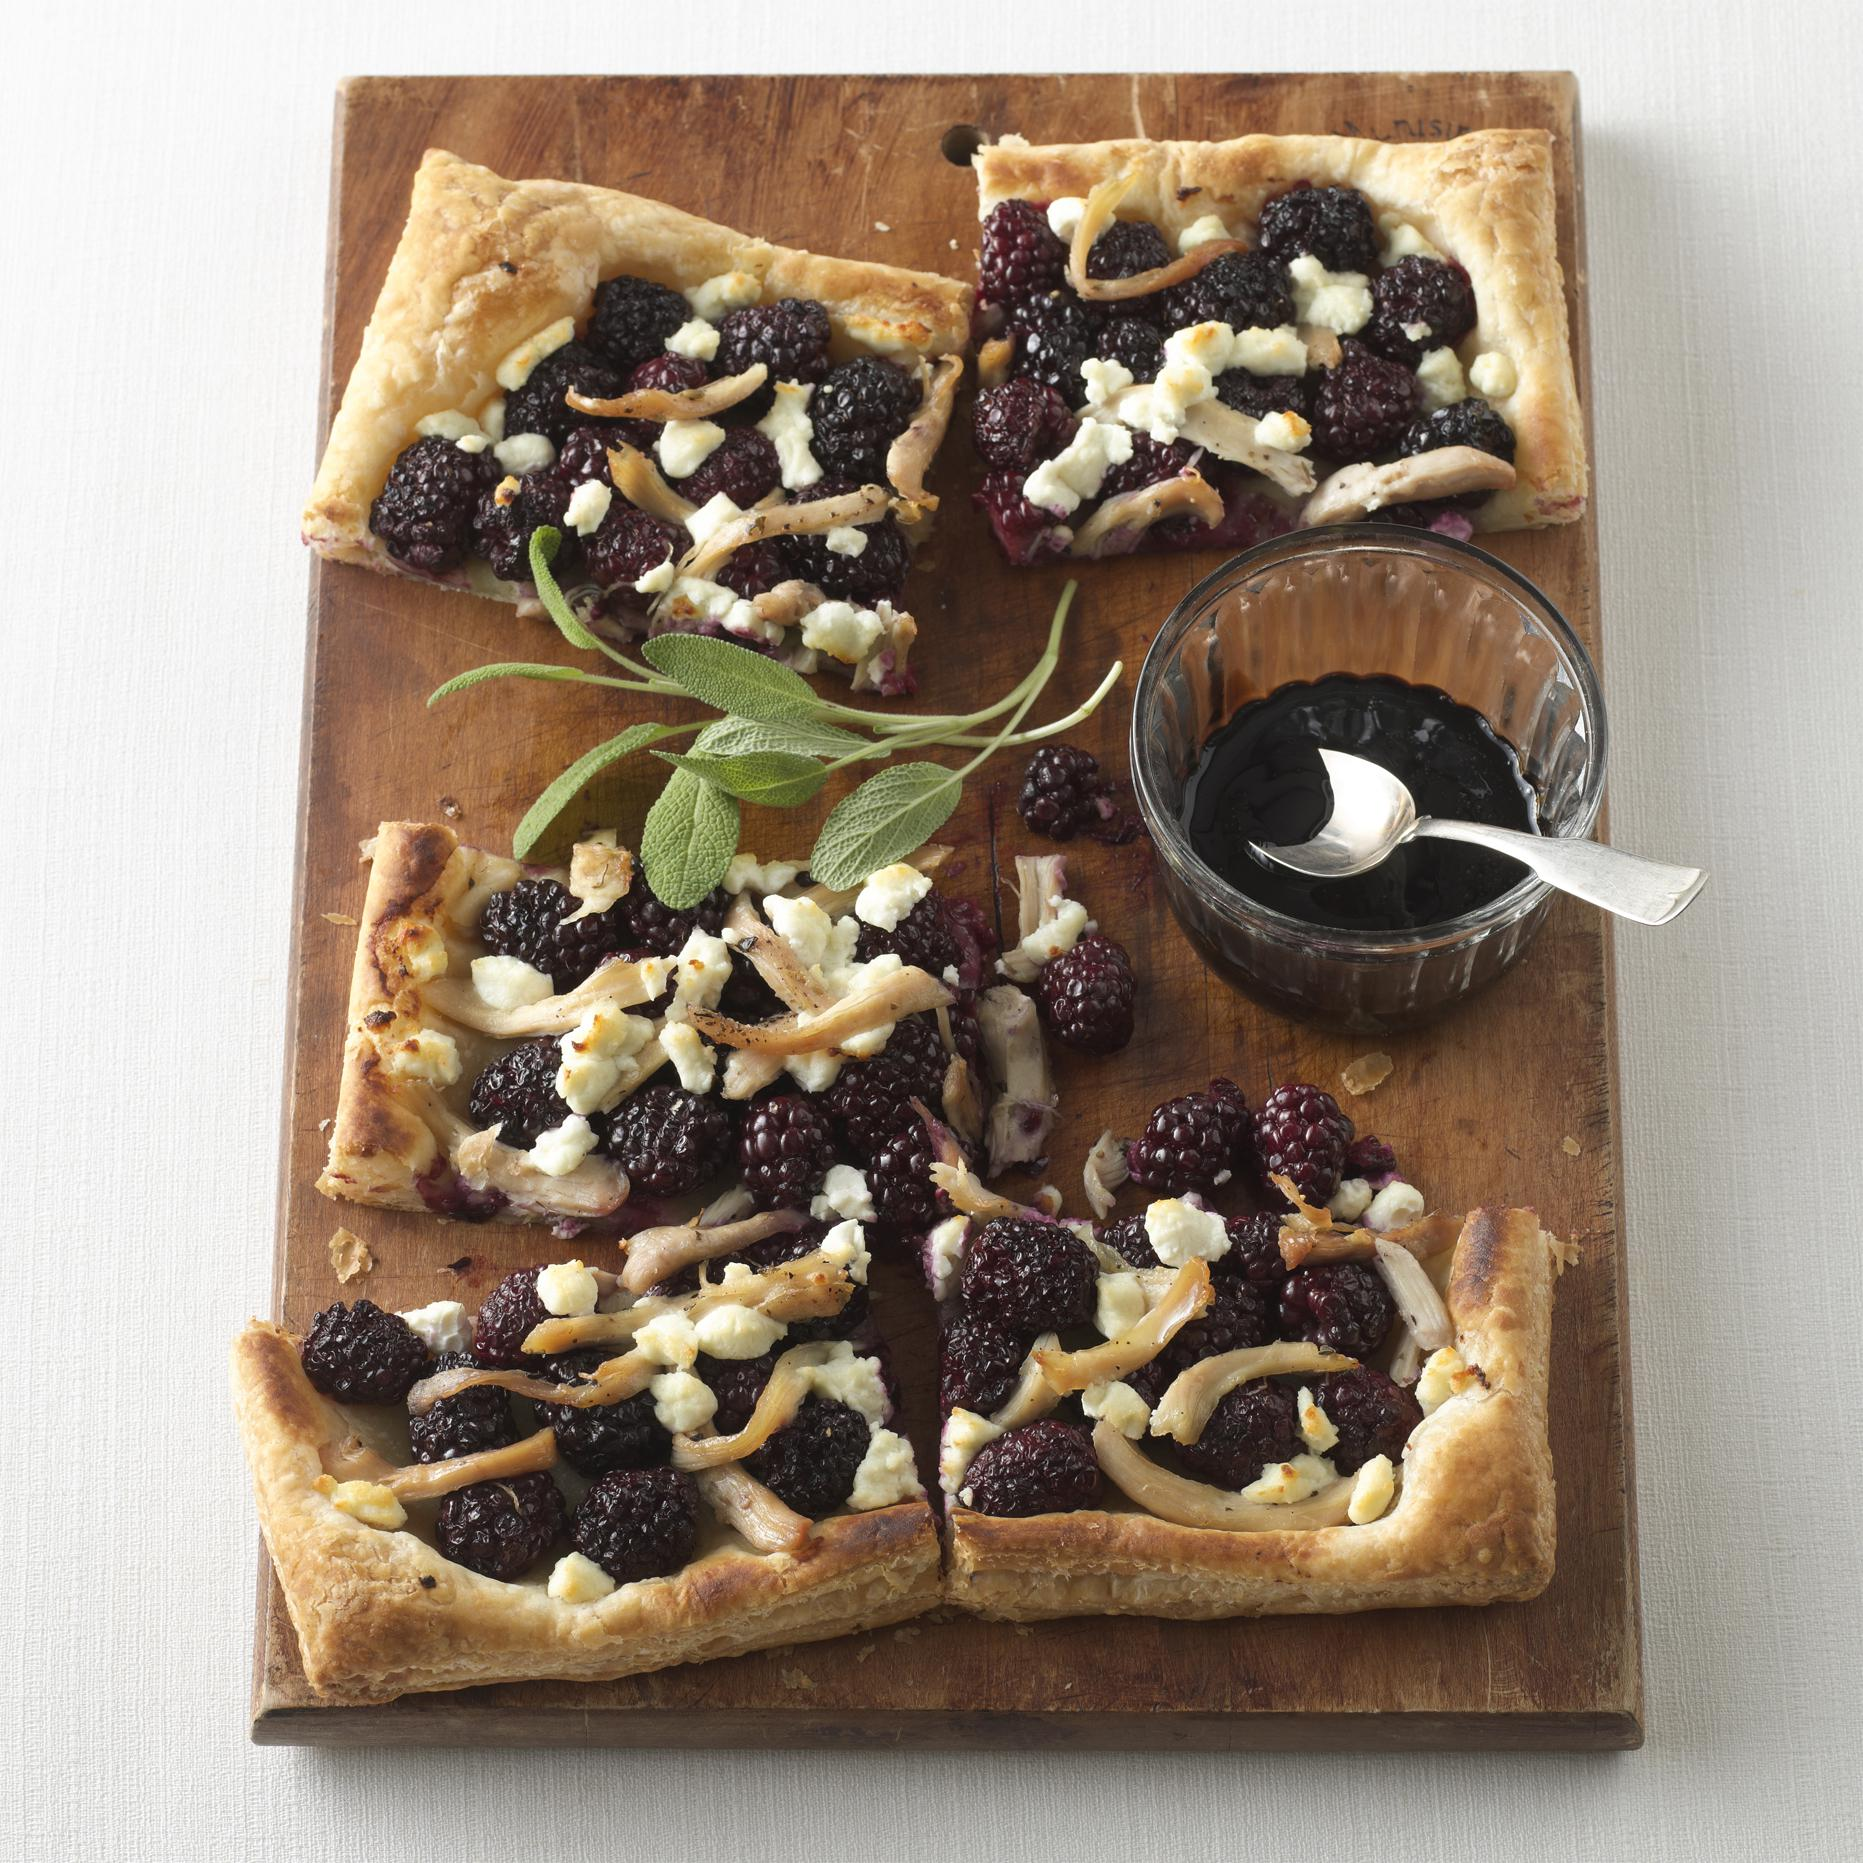 Chicken, Goat Cheese & Balsamic Blackberry Tart